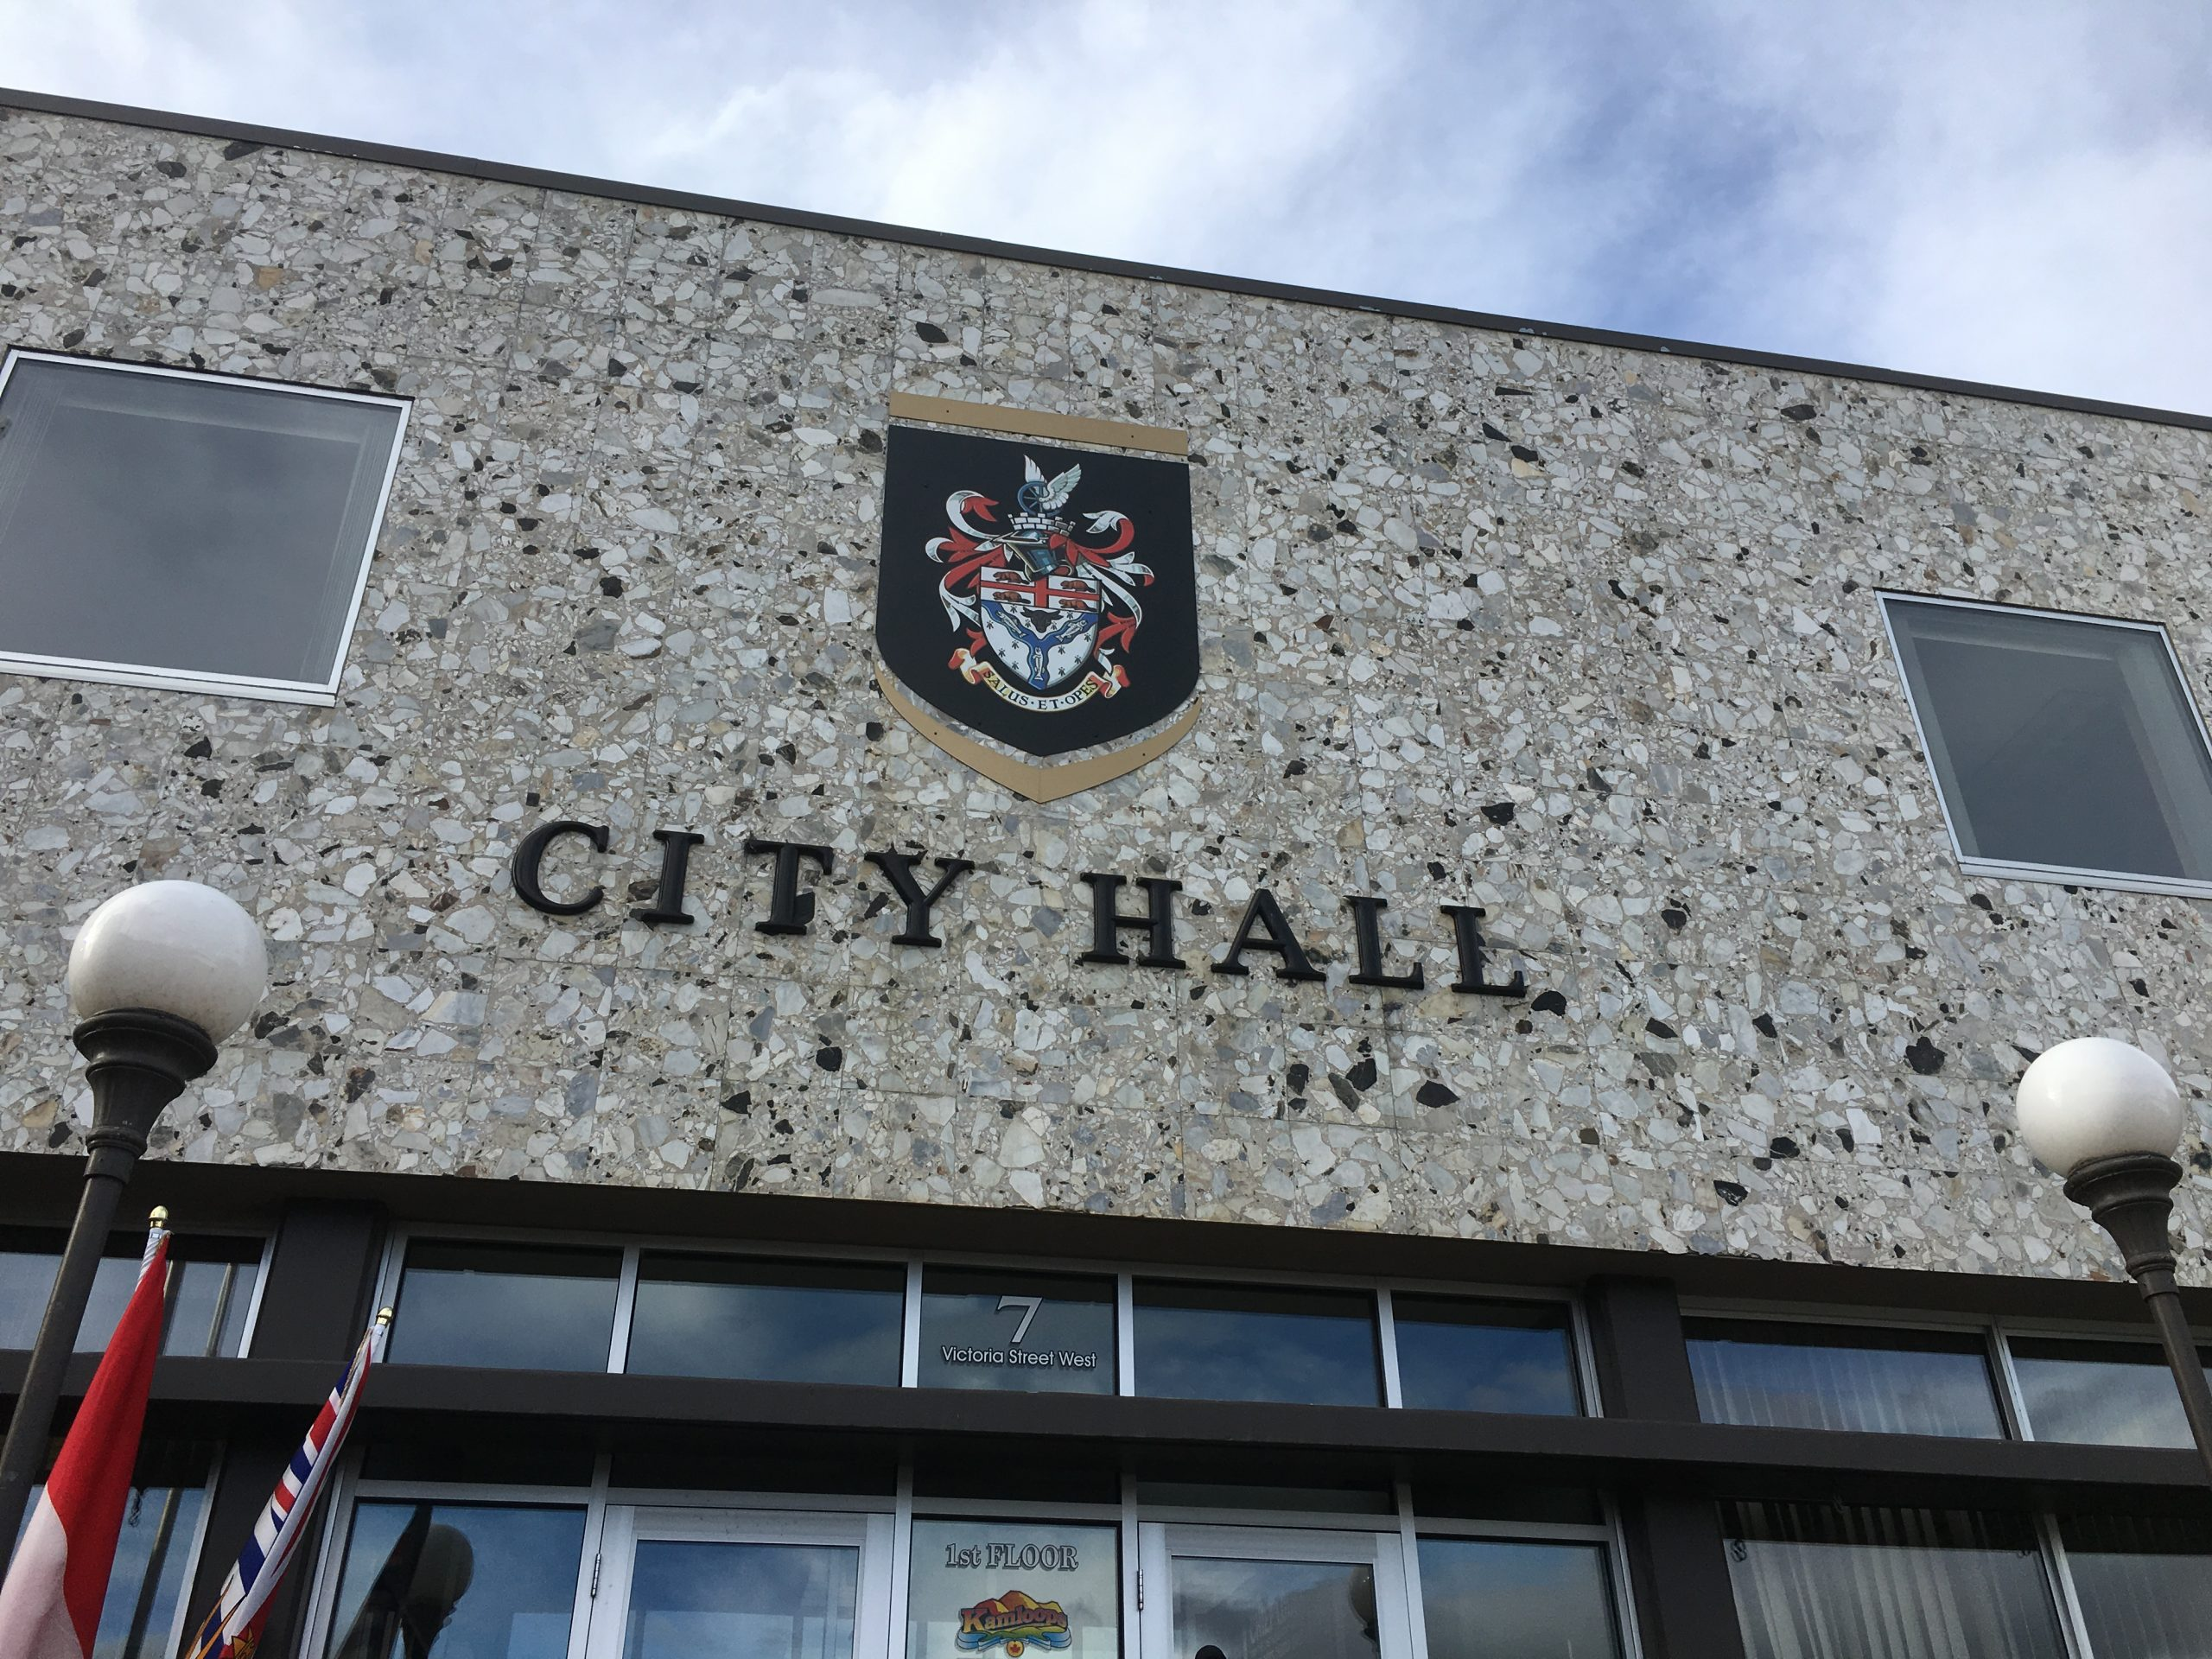 Kamloops Council voted unanimously to allow a First Nations organization to increase the number of affordable housing units